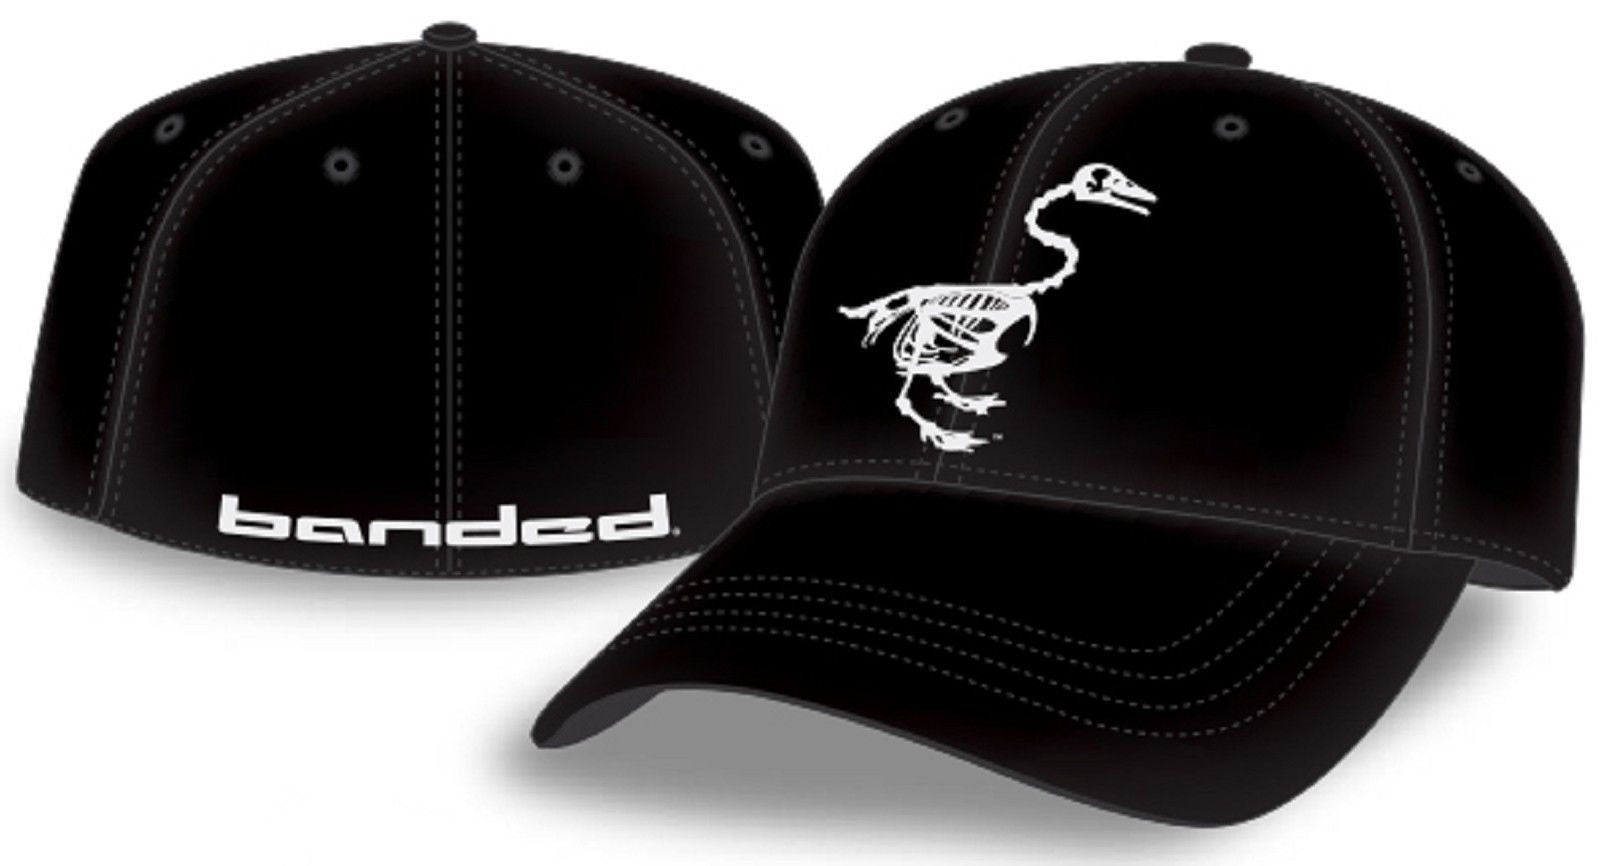 07616d08355 Banded Black Duck Skeleton Logo Stretch-Fit Fitted Hat - Mens Baseball  Style Cap